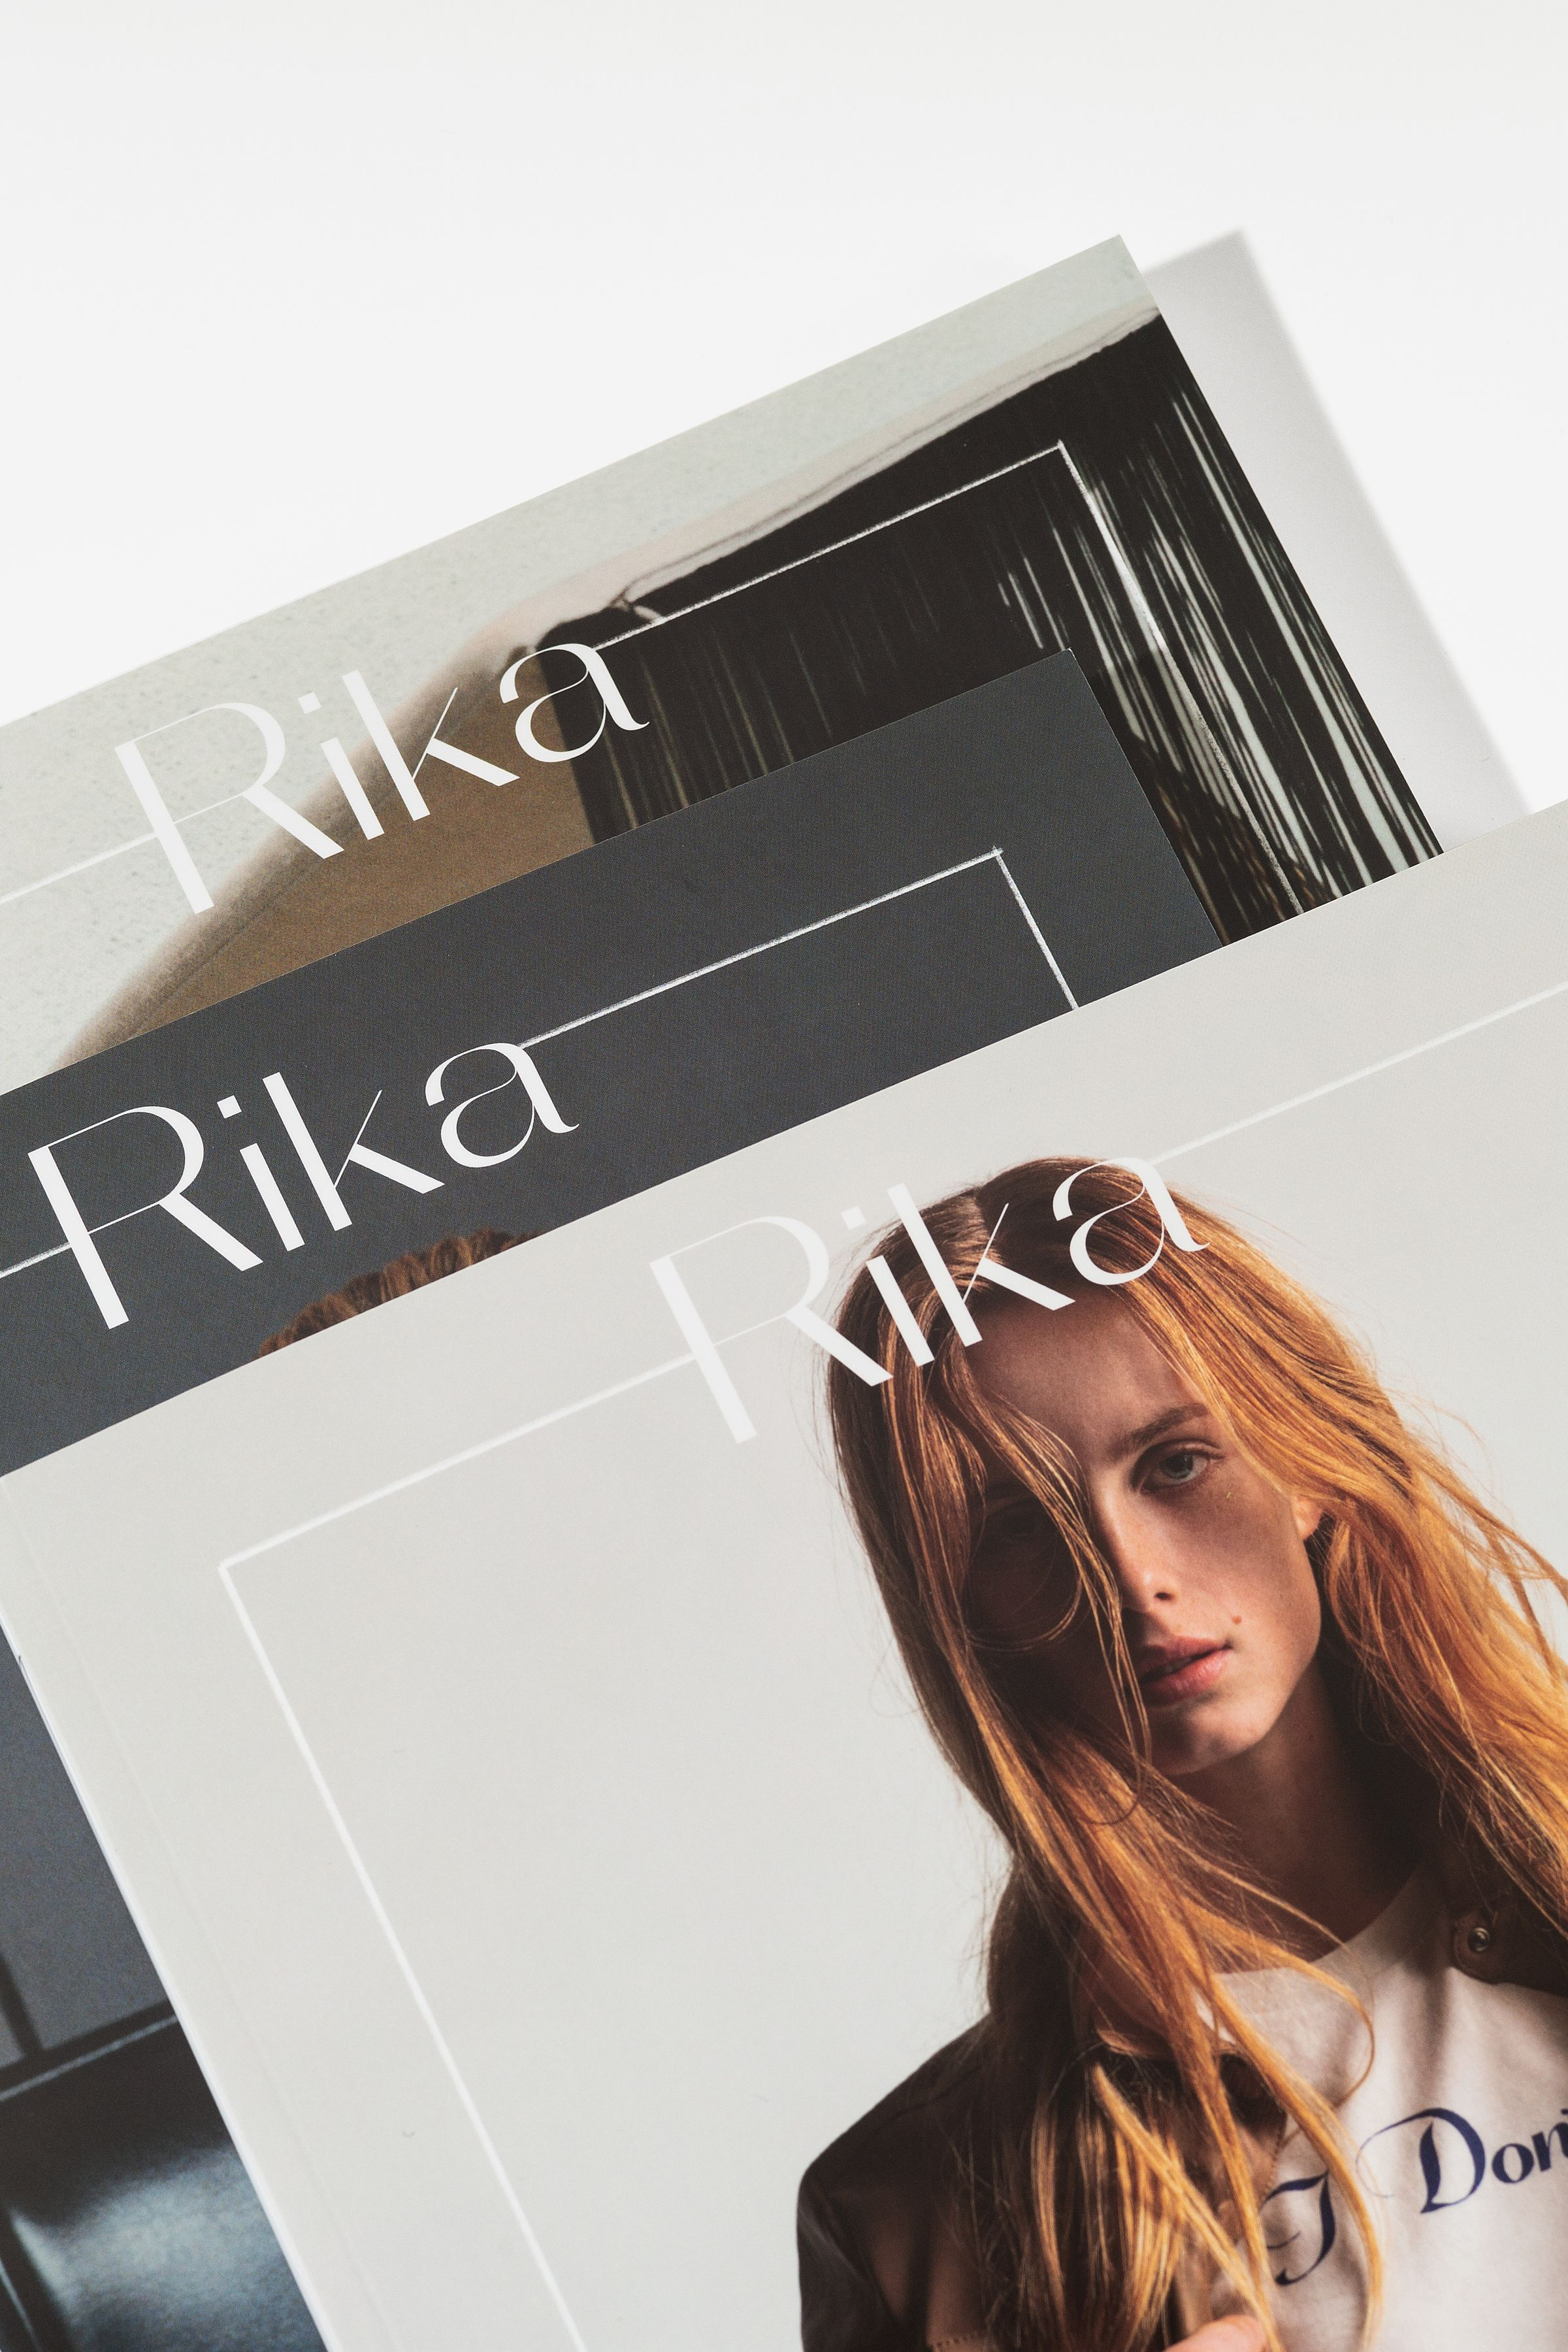 Rika Magazine issue no. 20 covers